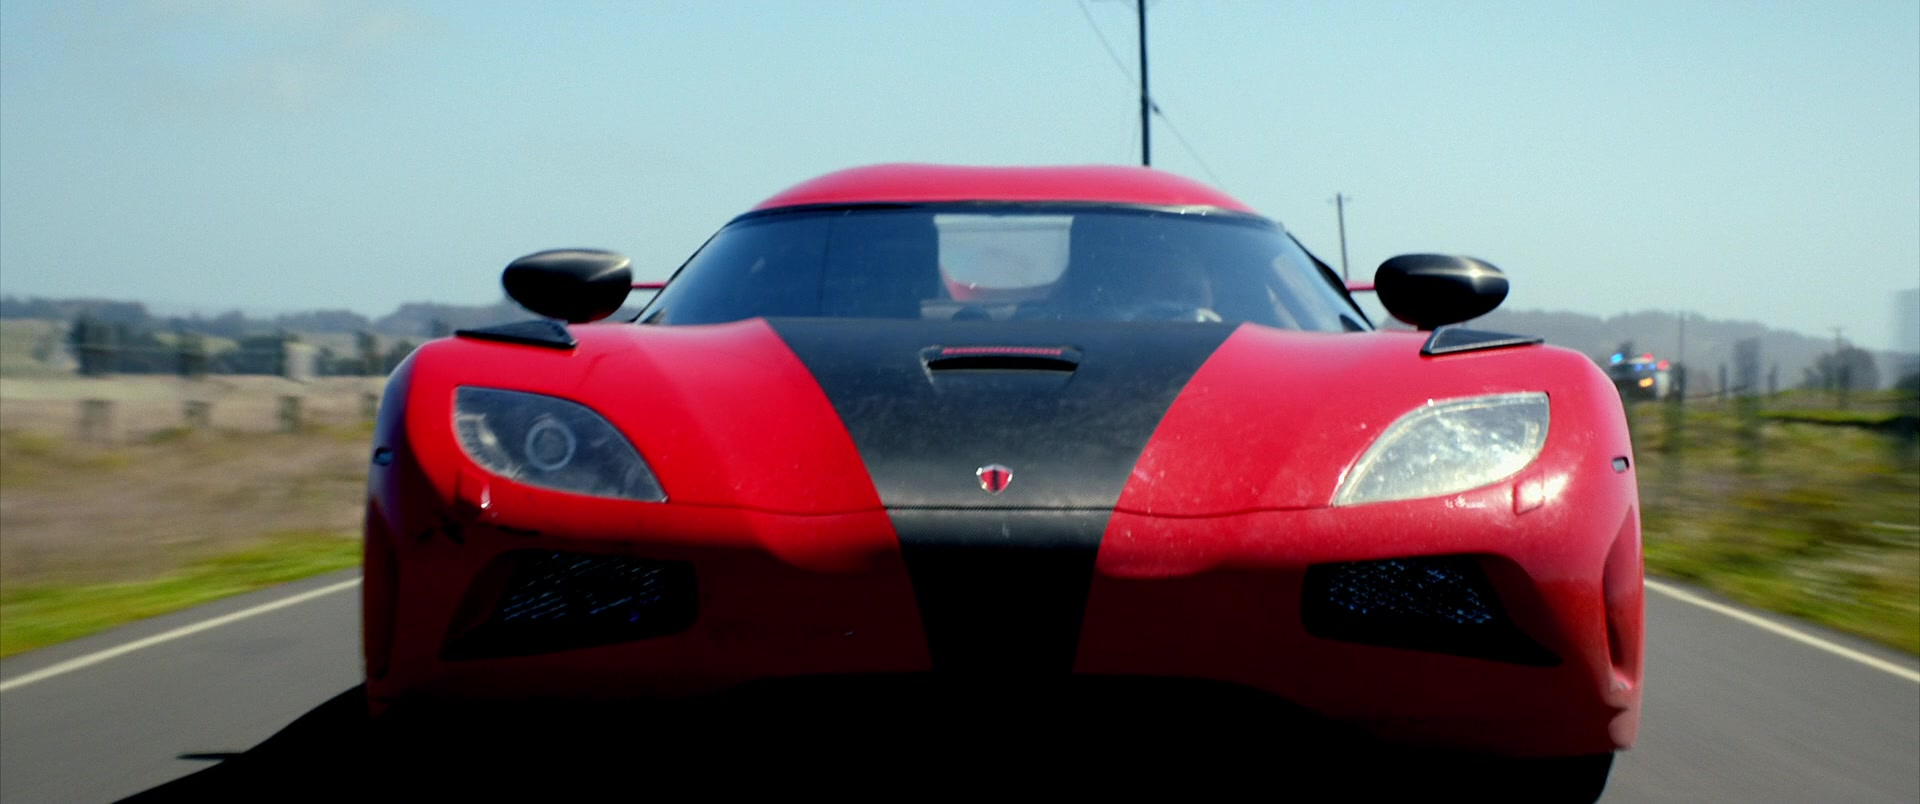 Koenigsegg Agera R Red Car Driven By Aaron Paul In Need